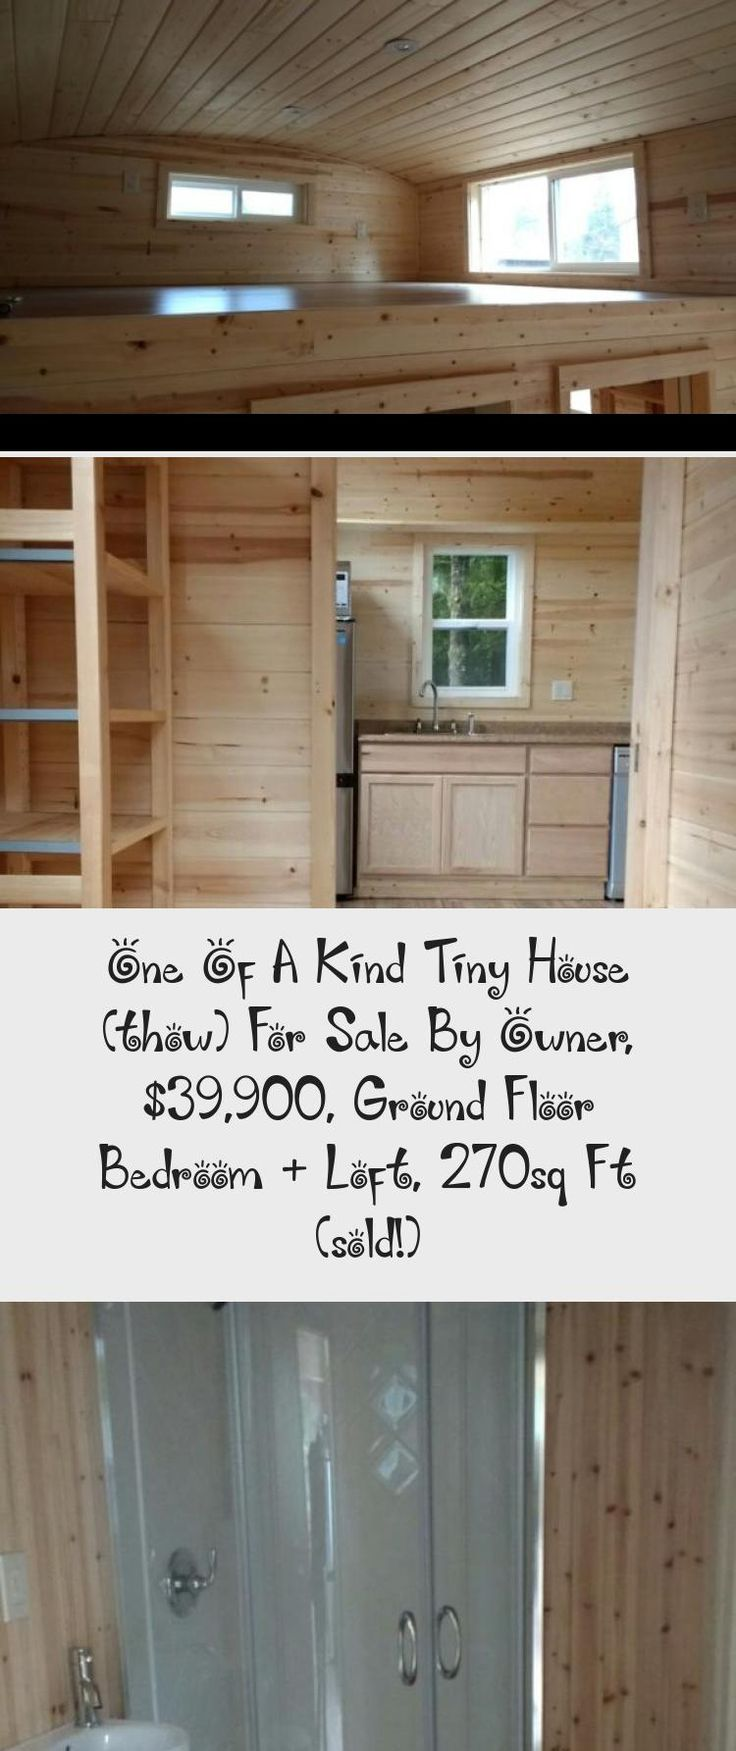 This is a custom tiny house on wheels that's for sale by